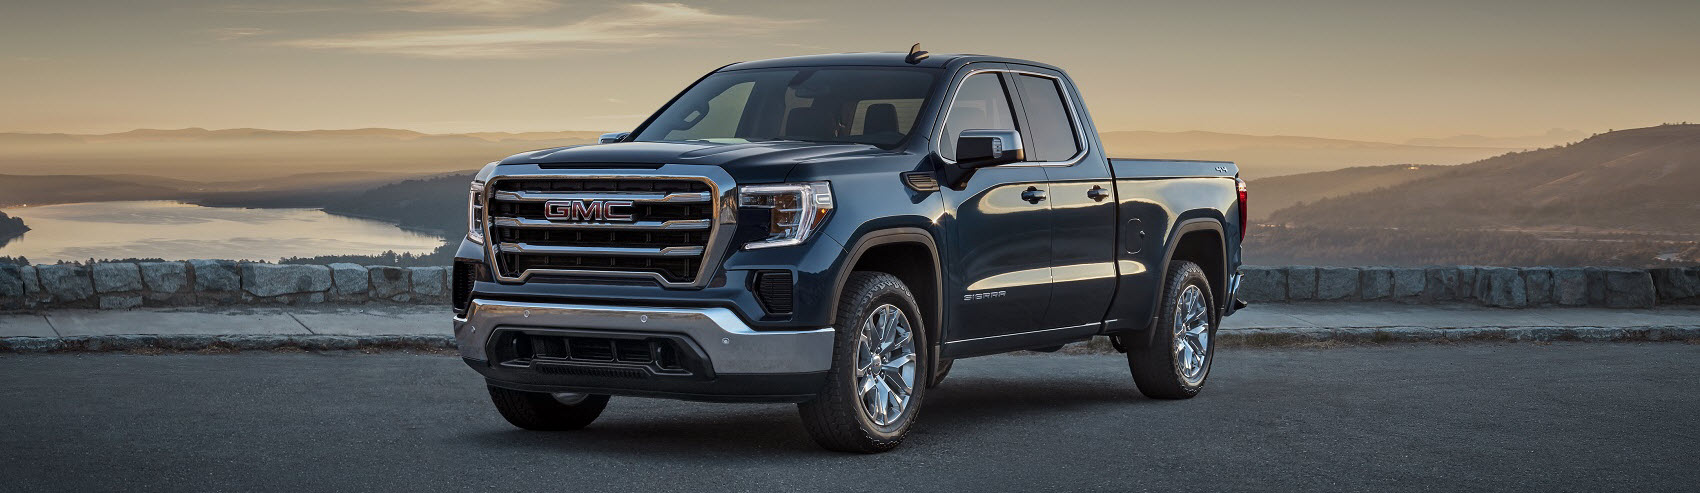 GMC Sierra Reviews